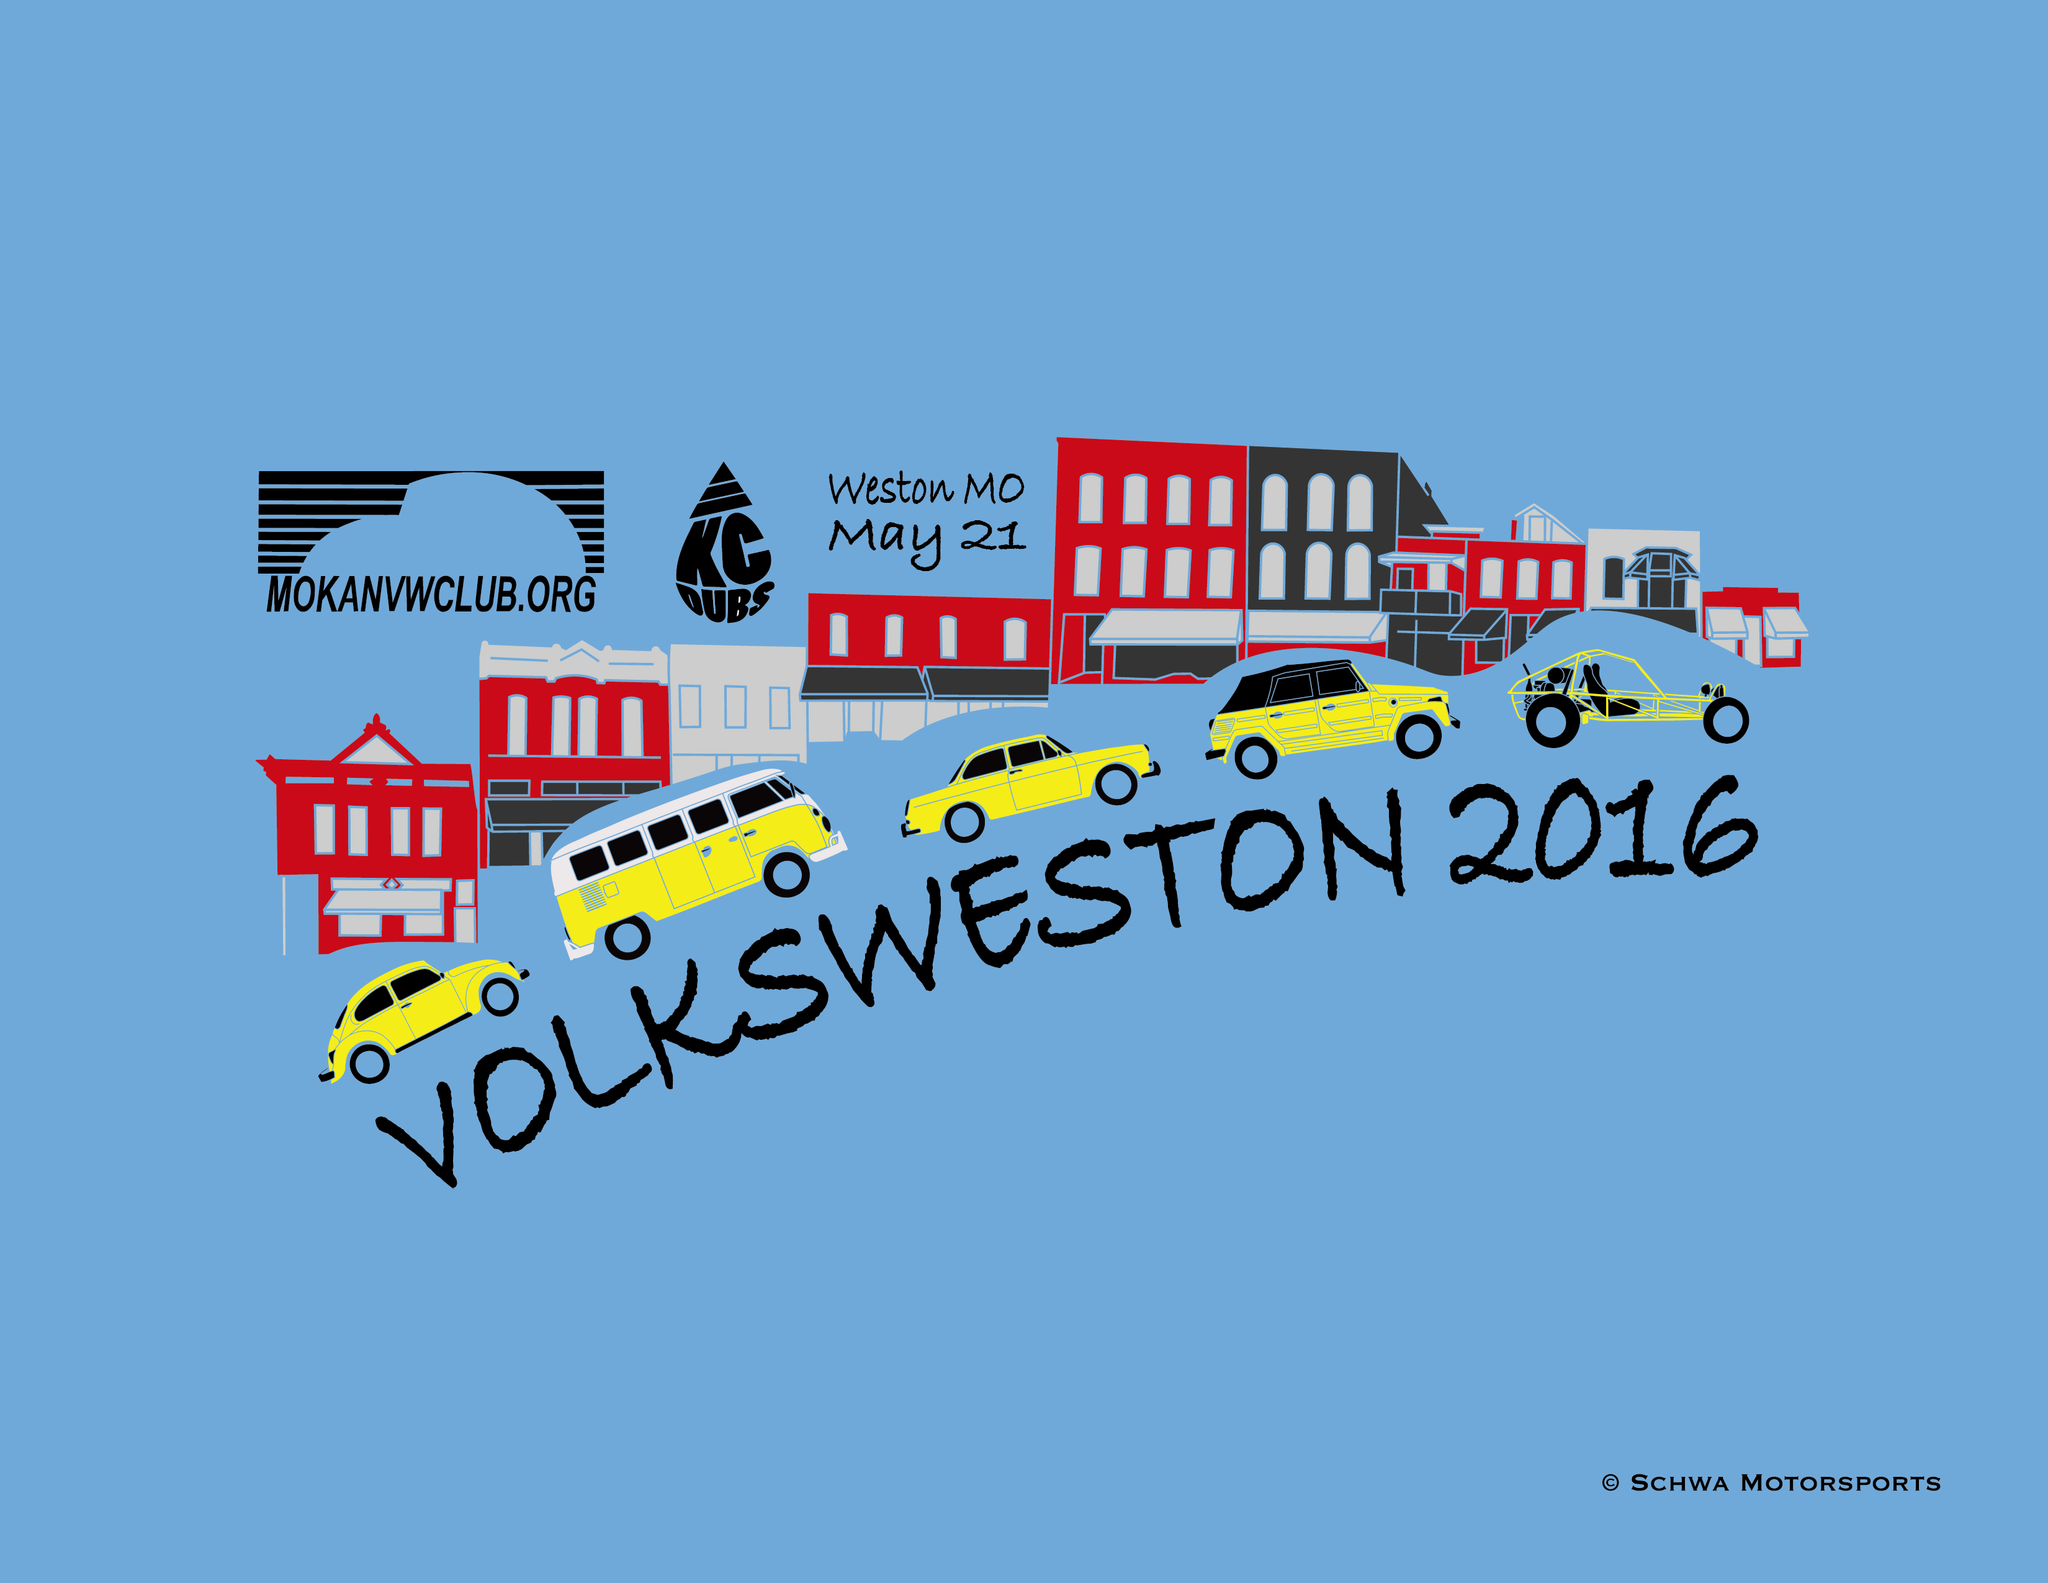 VolksWeston 2016 Show Multi Color T-Shirt